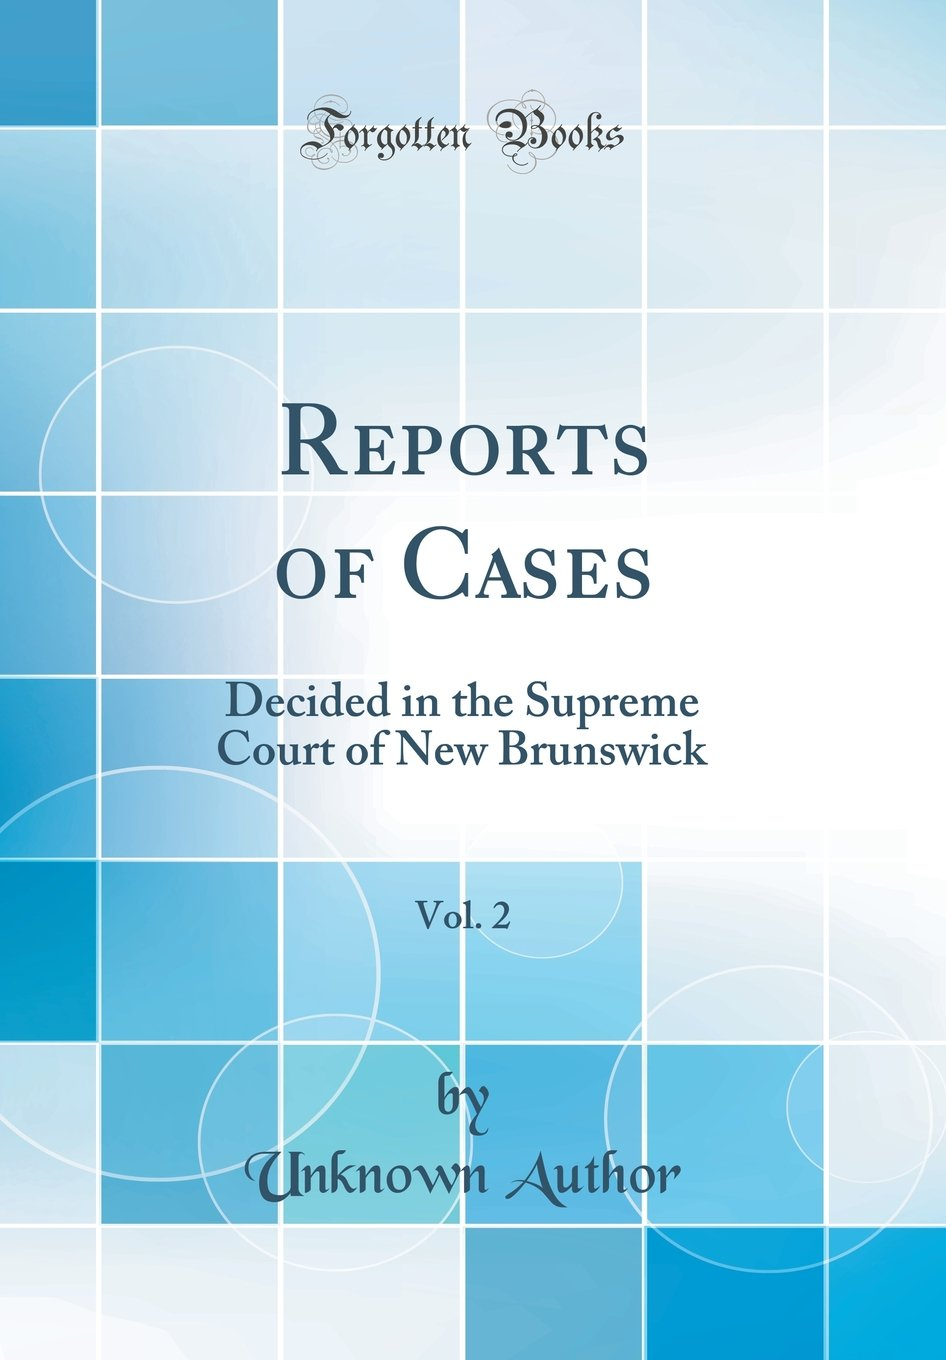 Download Reports of Cases, Vol. 2: Decided in the Supreme Court of New Brunswick (Classic Reprint) ebook